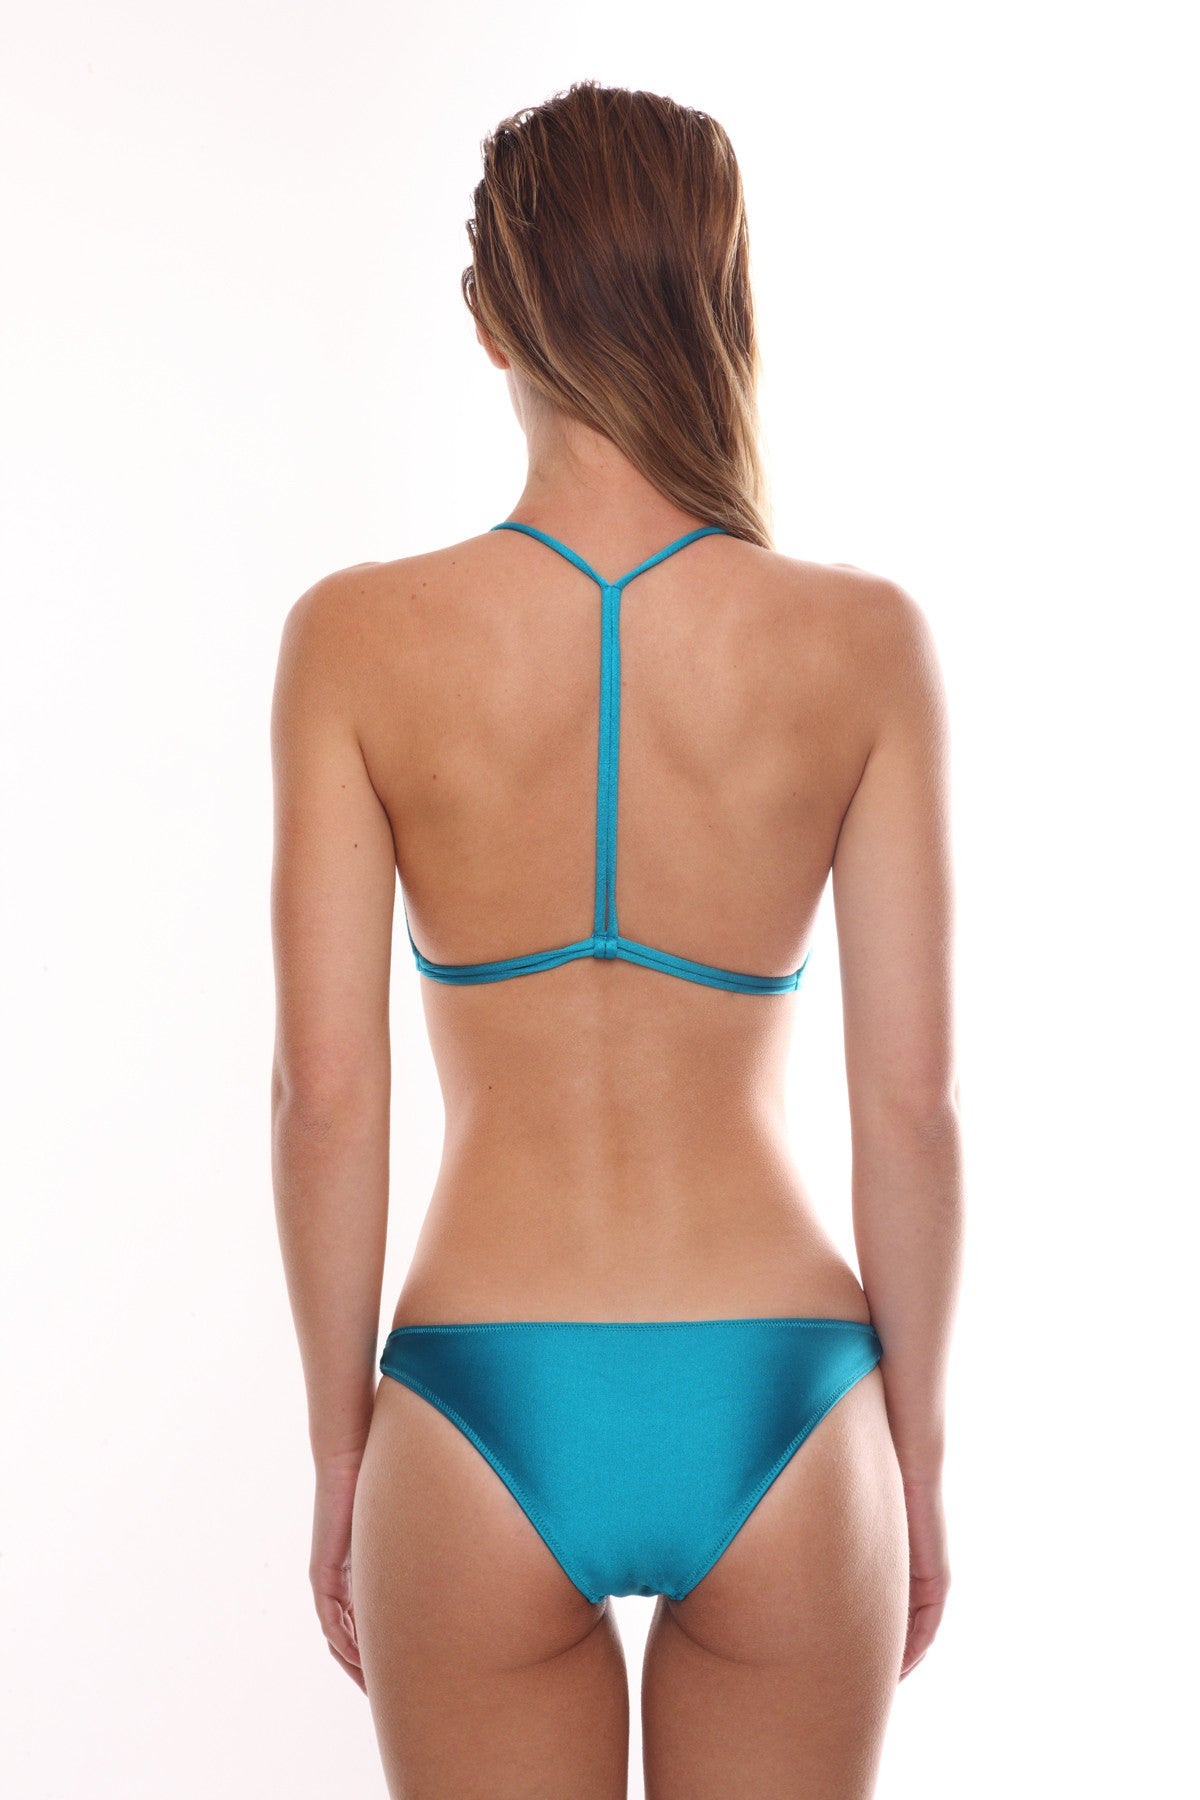 Midnight Swimwear-Bondi Aqua Blue Bikini Top and Bottoms